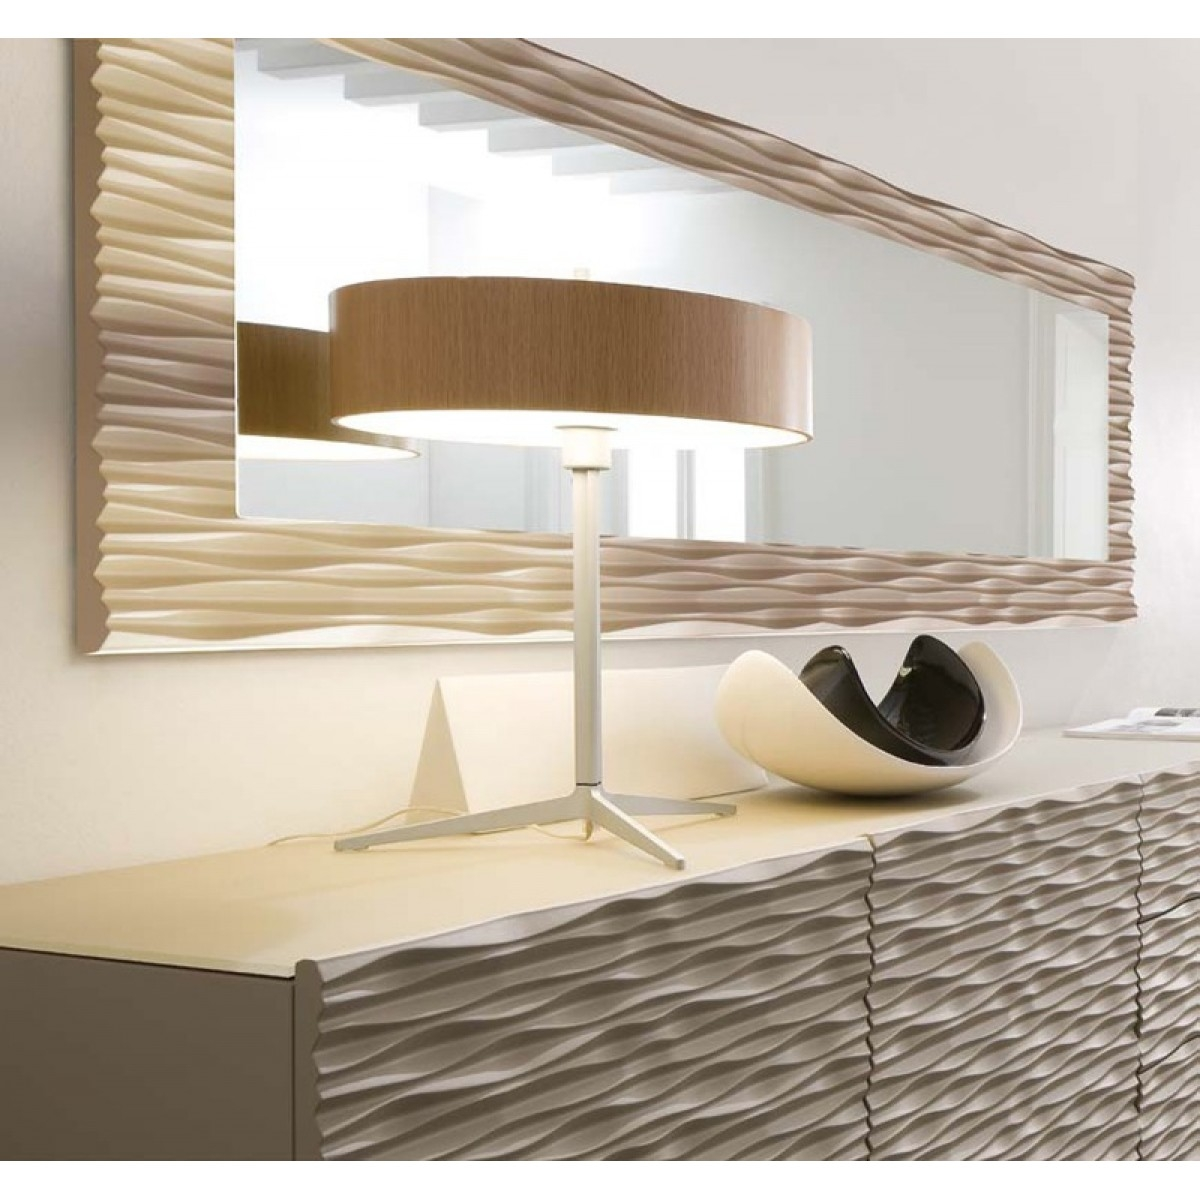 Wall Mirrors Contemporary Amazing Large Designer Wall Mirrors With Regard To Wall Mirrors Contemporary (View 5 of 15)